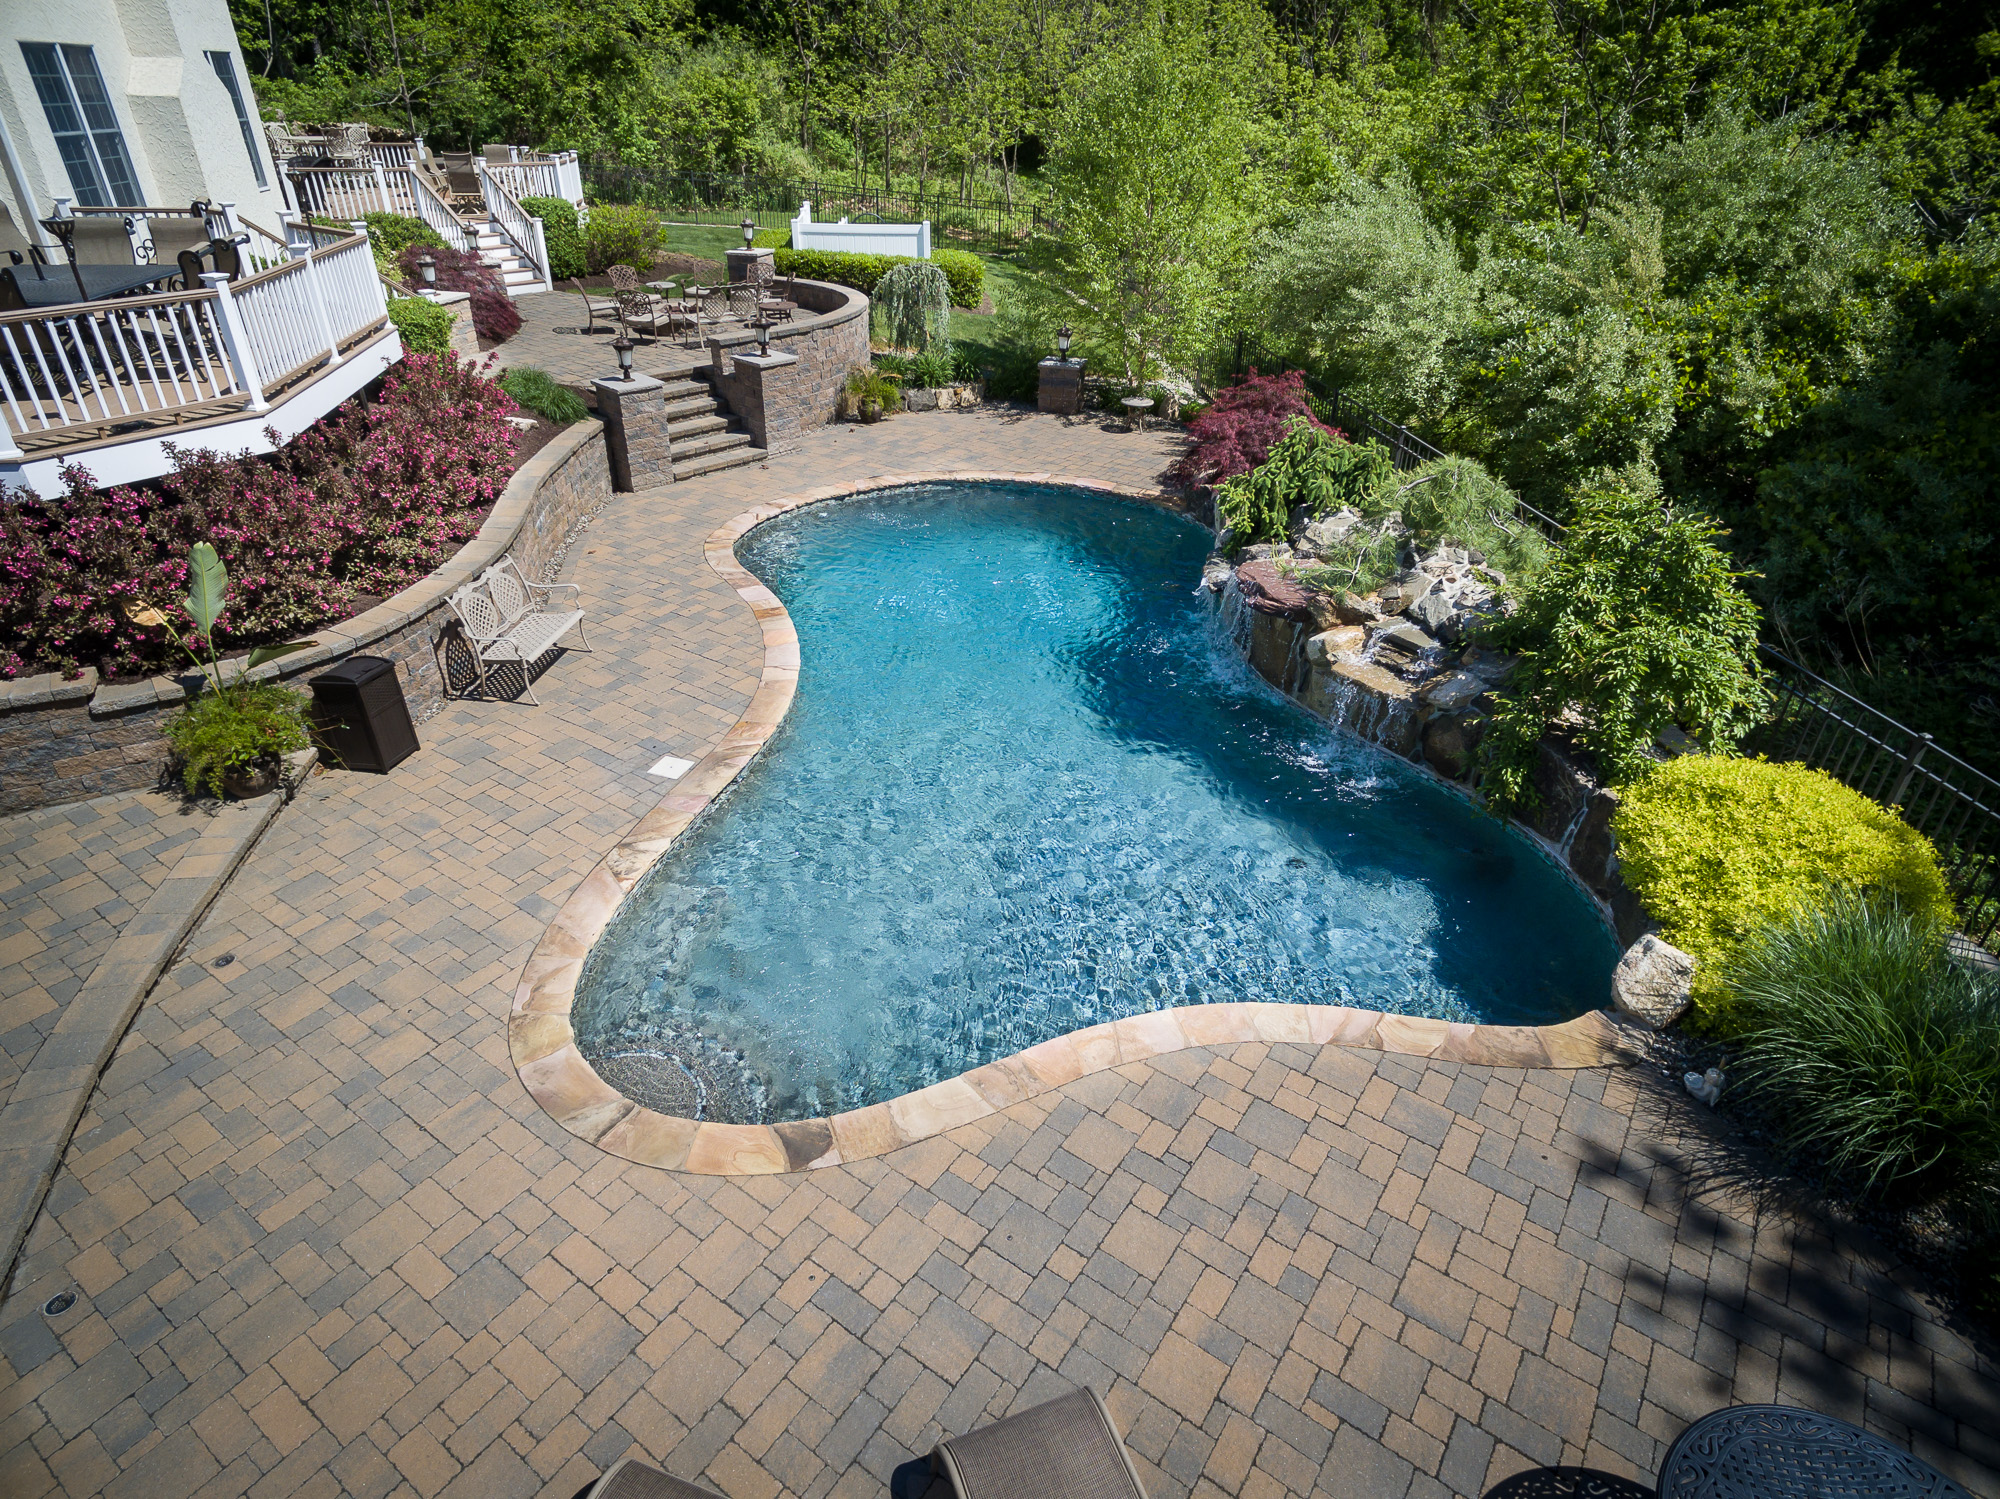 Chester nj custom inground swimming pool design for Inground pool designs